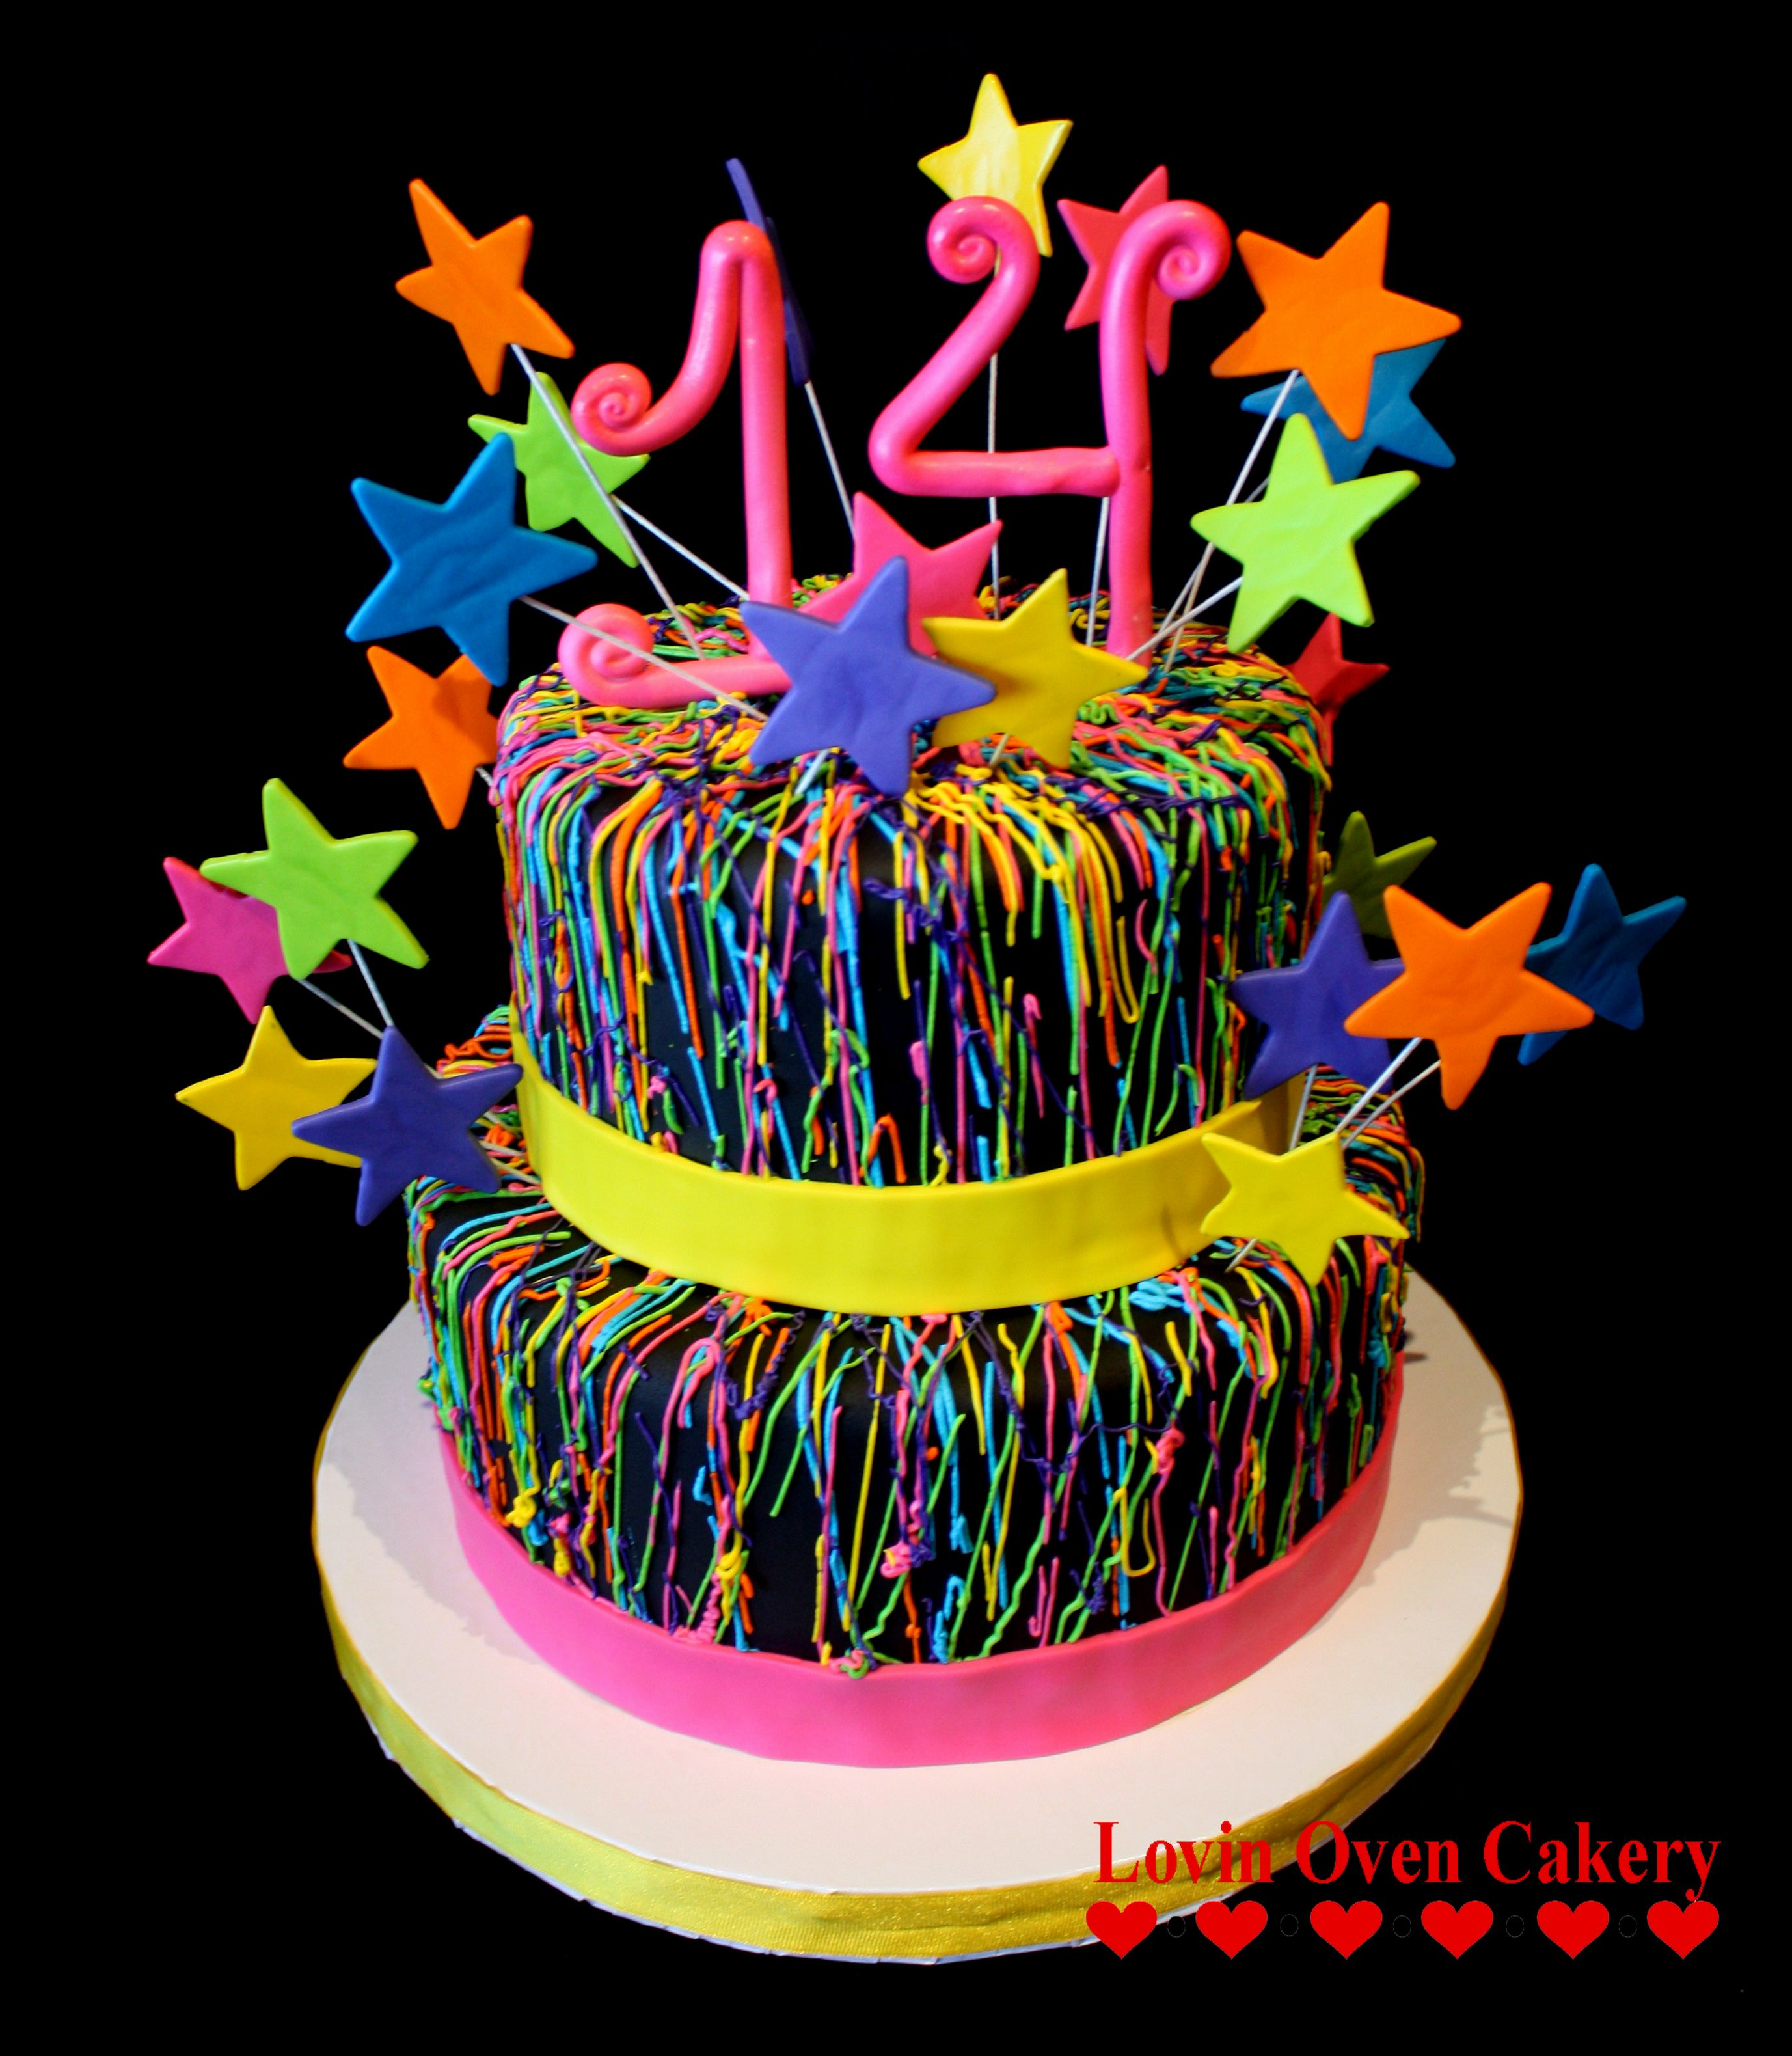 Pin By Lovin Oven Cakery On Birthday Cakes Neon Birthday Cakes